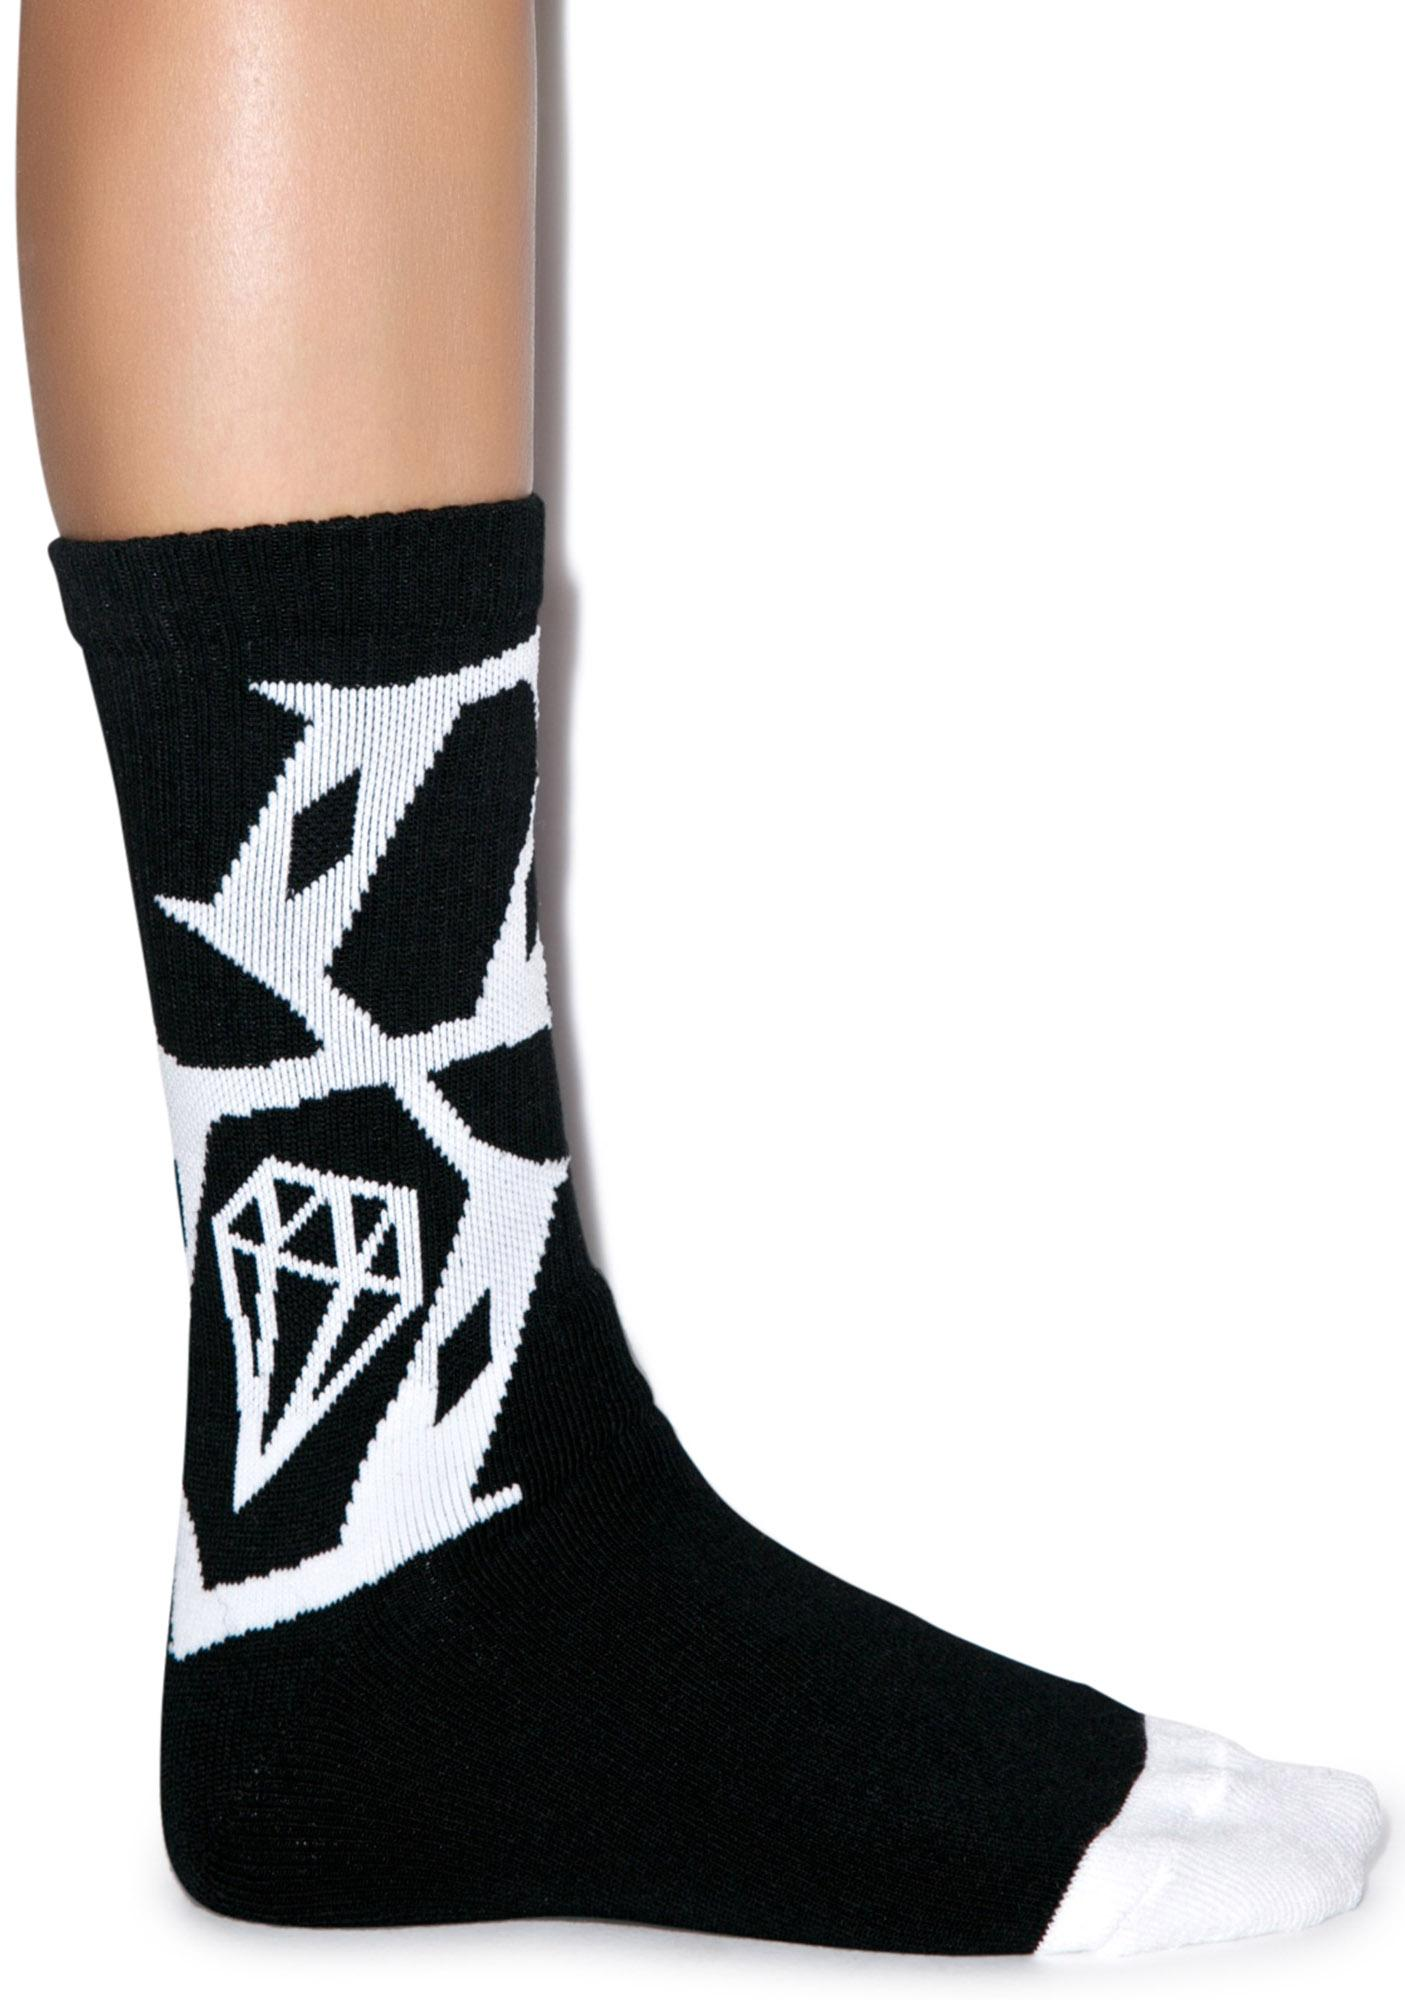 Rebel8 Tilted 8 Socks